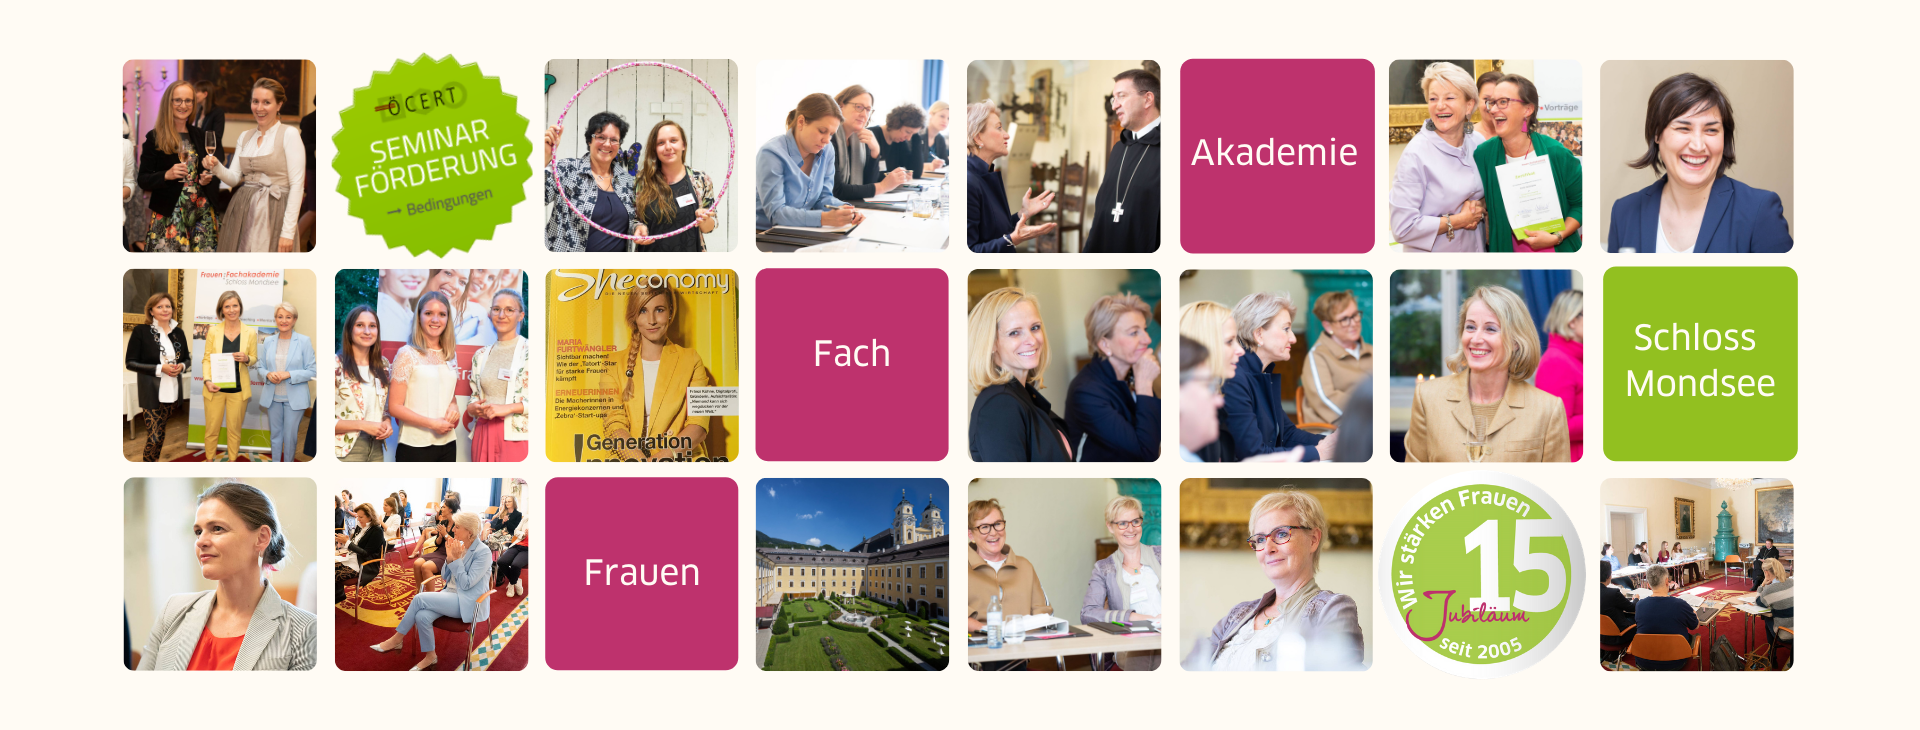 Collage Frauen:Fachakademie